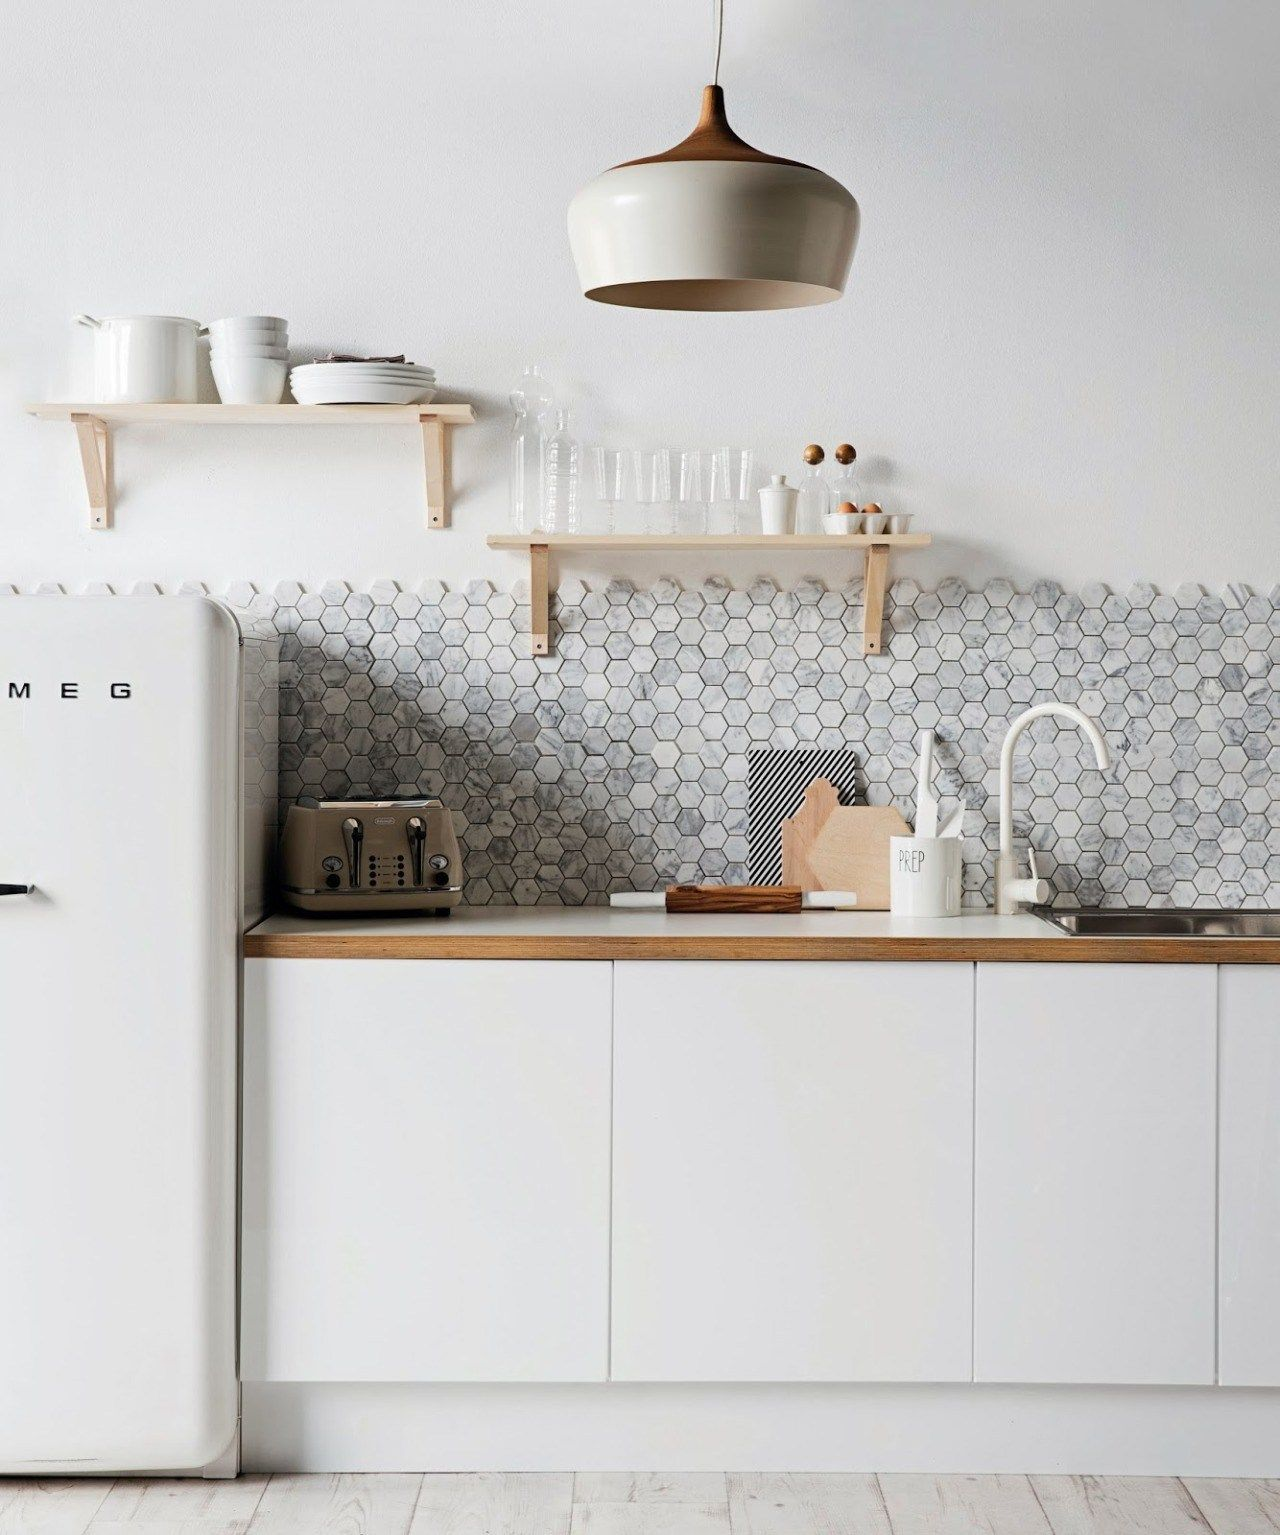 Hexcellent jump on the hexagon decor trend kitchens kitchen